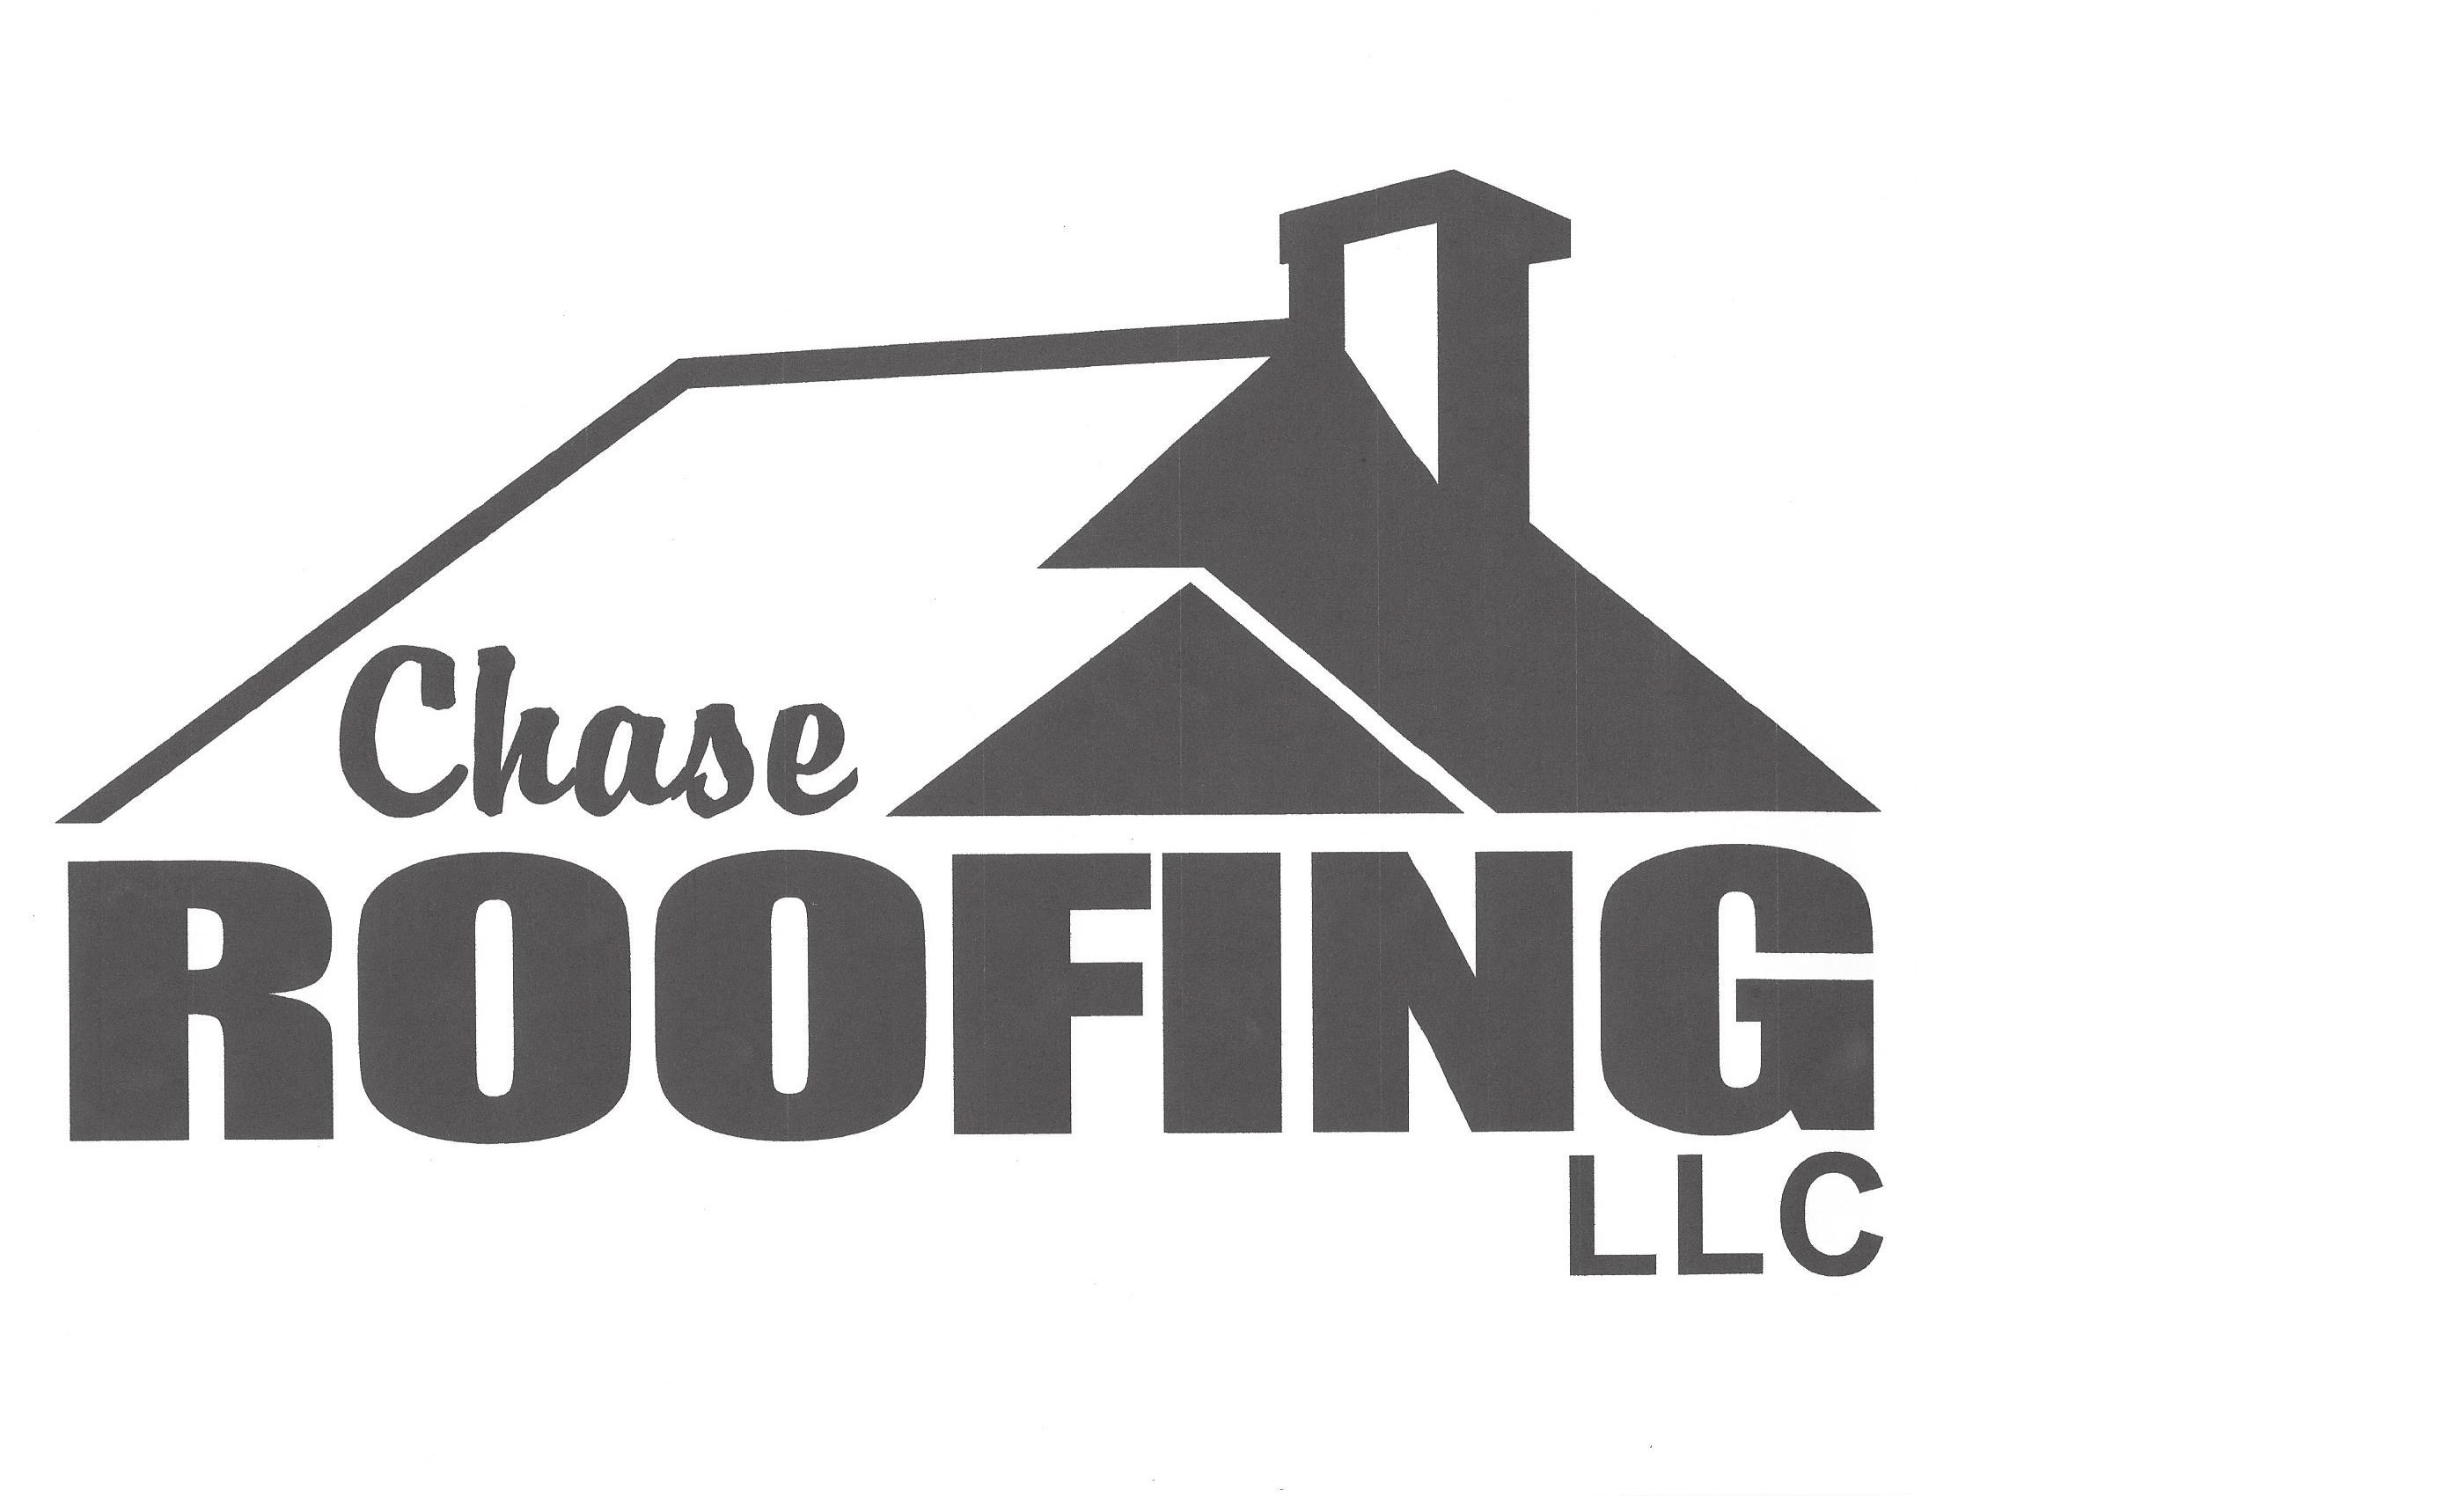 Chase Roofing LLC - Newport News, VA 23605 - (757)320-4829 | ShowMeLocal.com